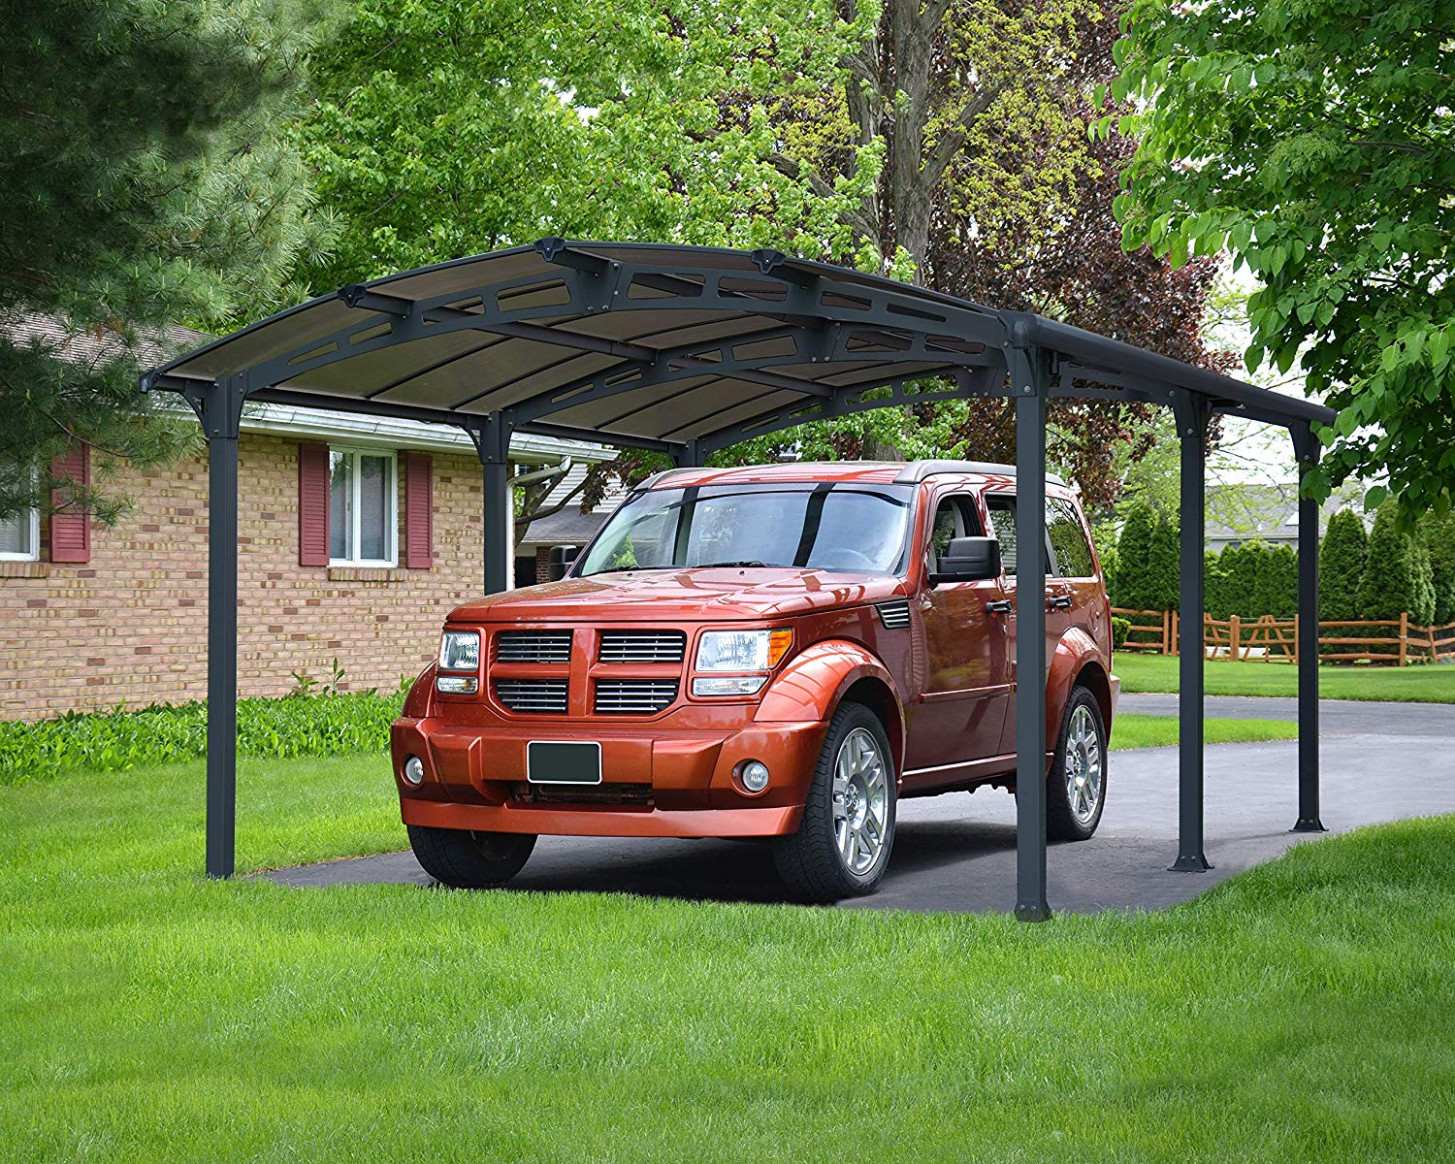 Palram Arcadia 12 Dark Grey Carport Robust Structure For Year Round Use Carport Tent Canadian Tire